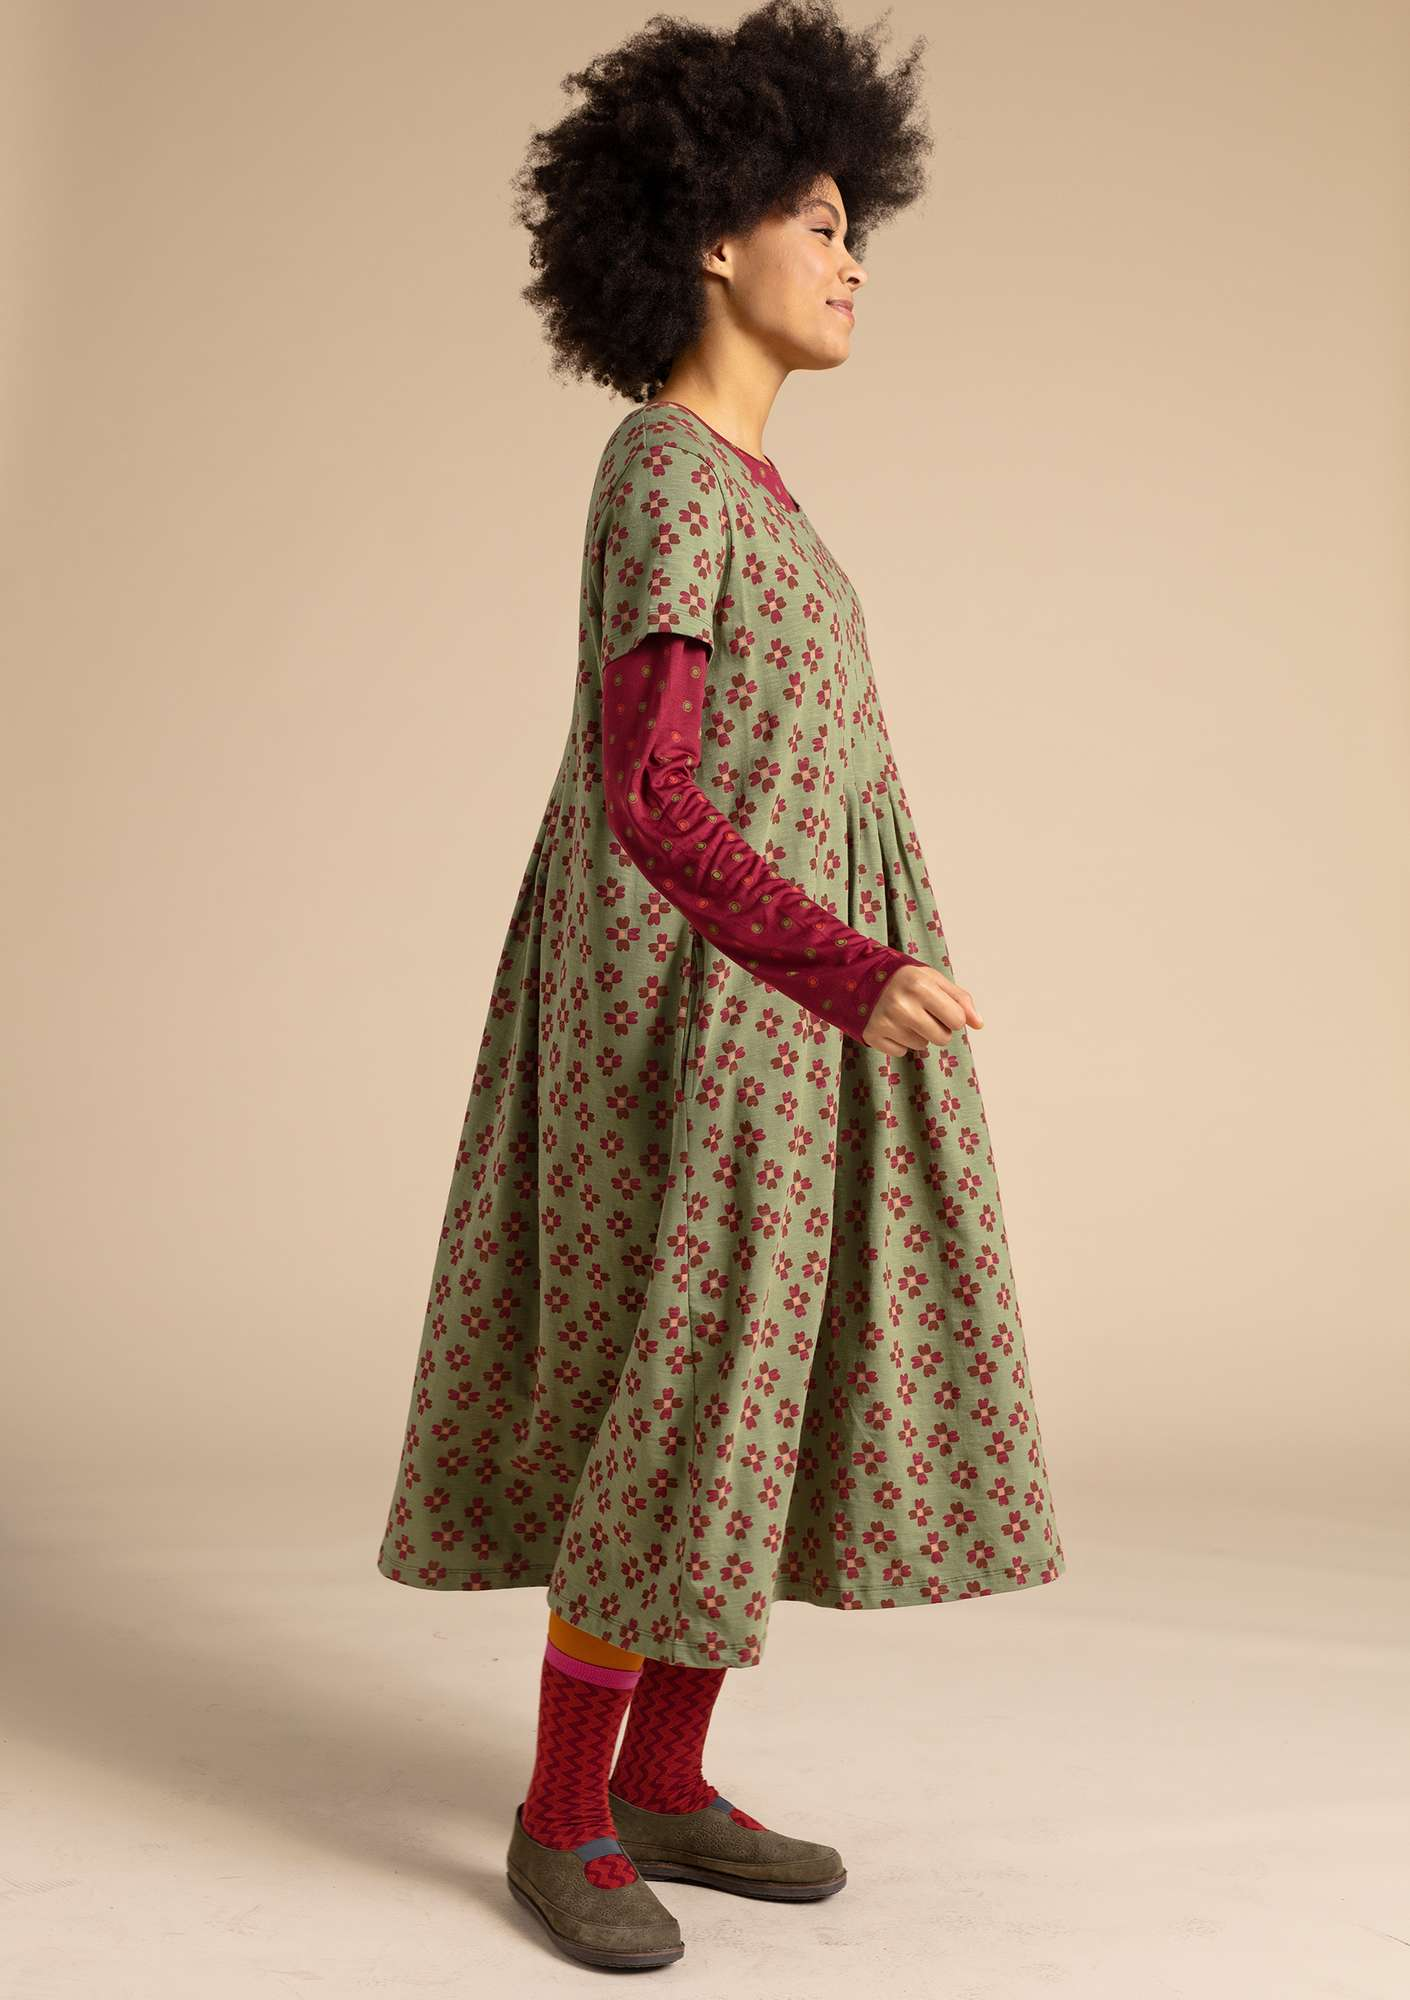 """Livia"" dress in organic cotton sage/patterned"